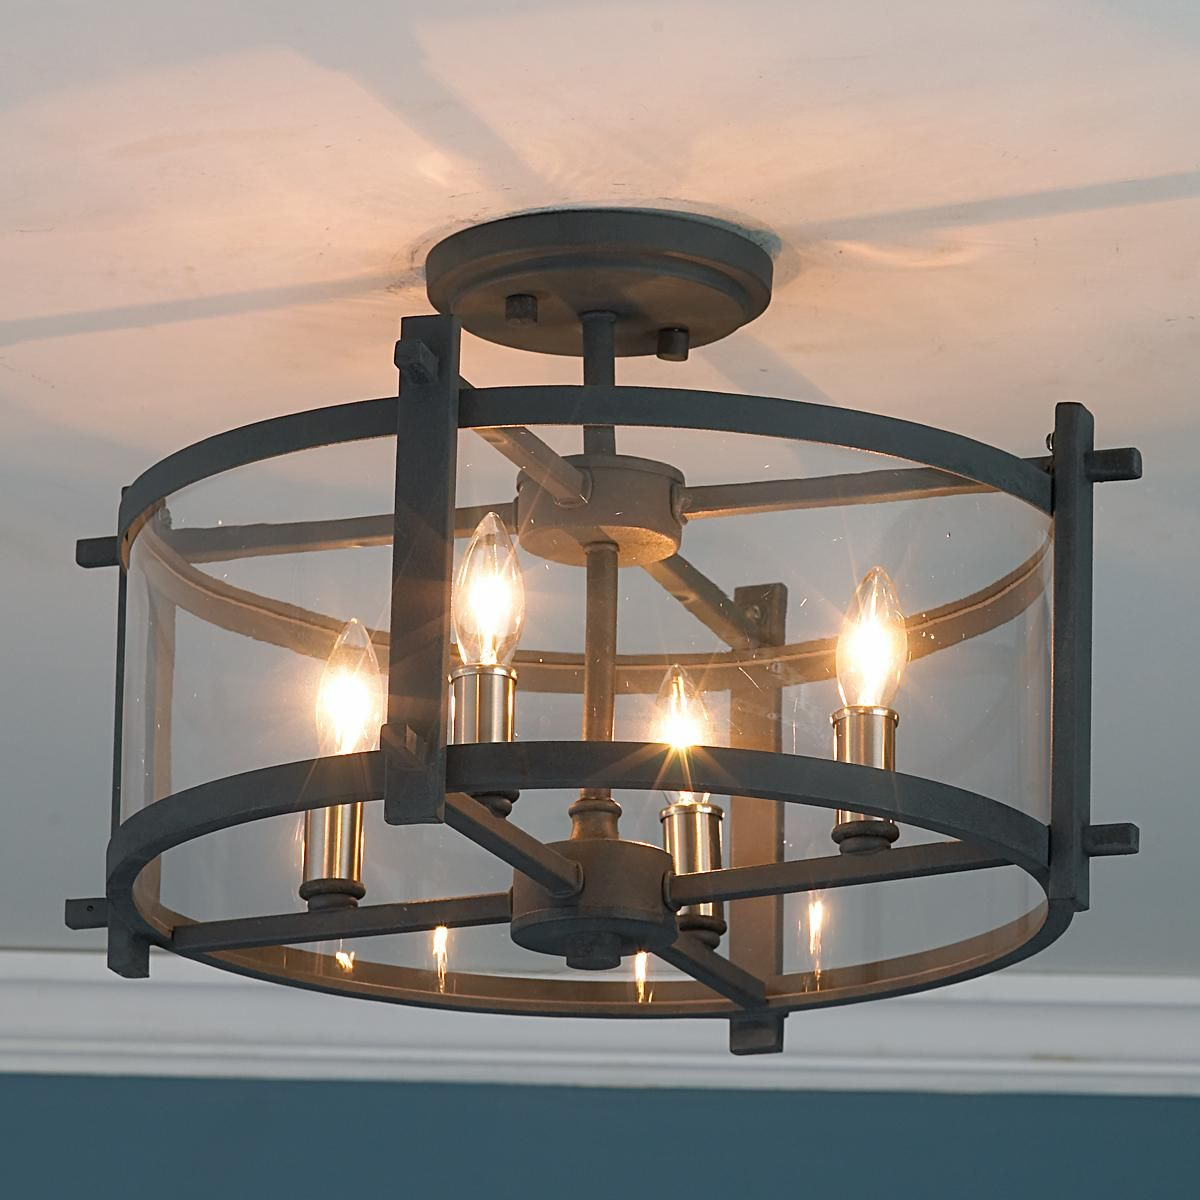 Ceiling Light Fixtures For Living Room Small Decorating Ideas Clearly Modern Semi Flush Reno Pinterest Clear Curved Glass Is Enclosed In Dark Charcoal Gray Iron Strapping 269 4x60 Watts